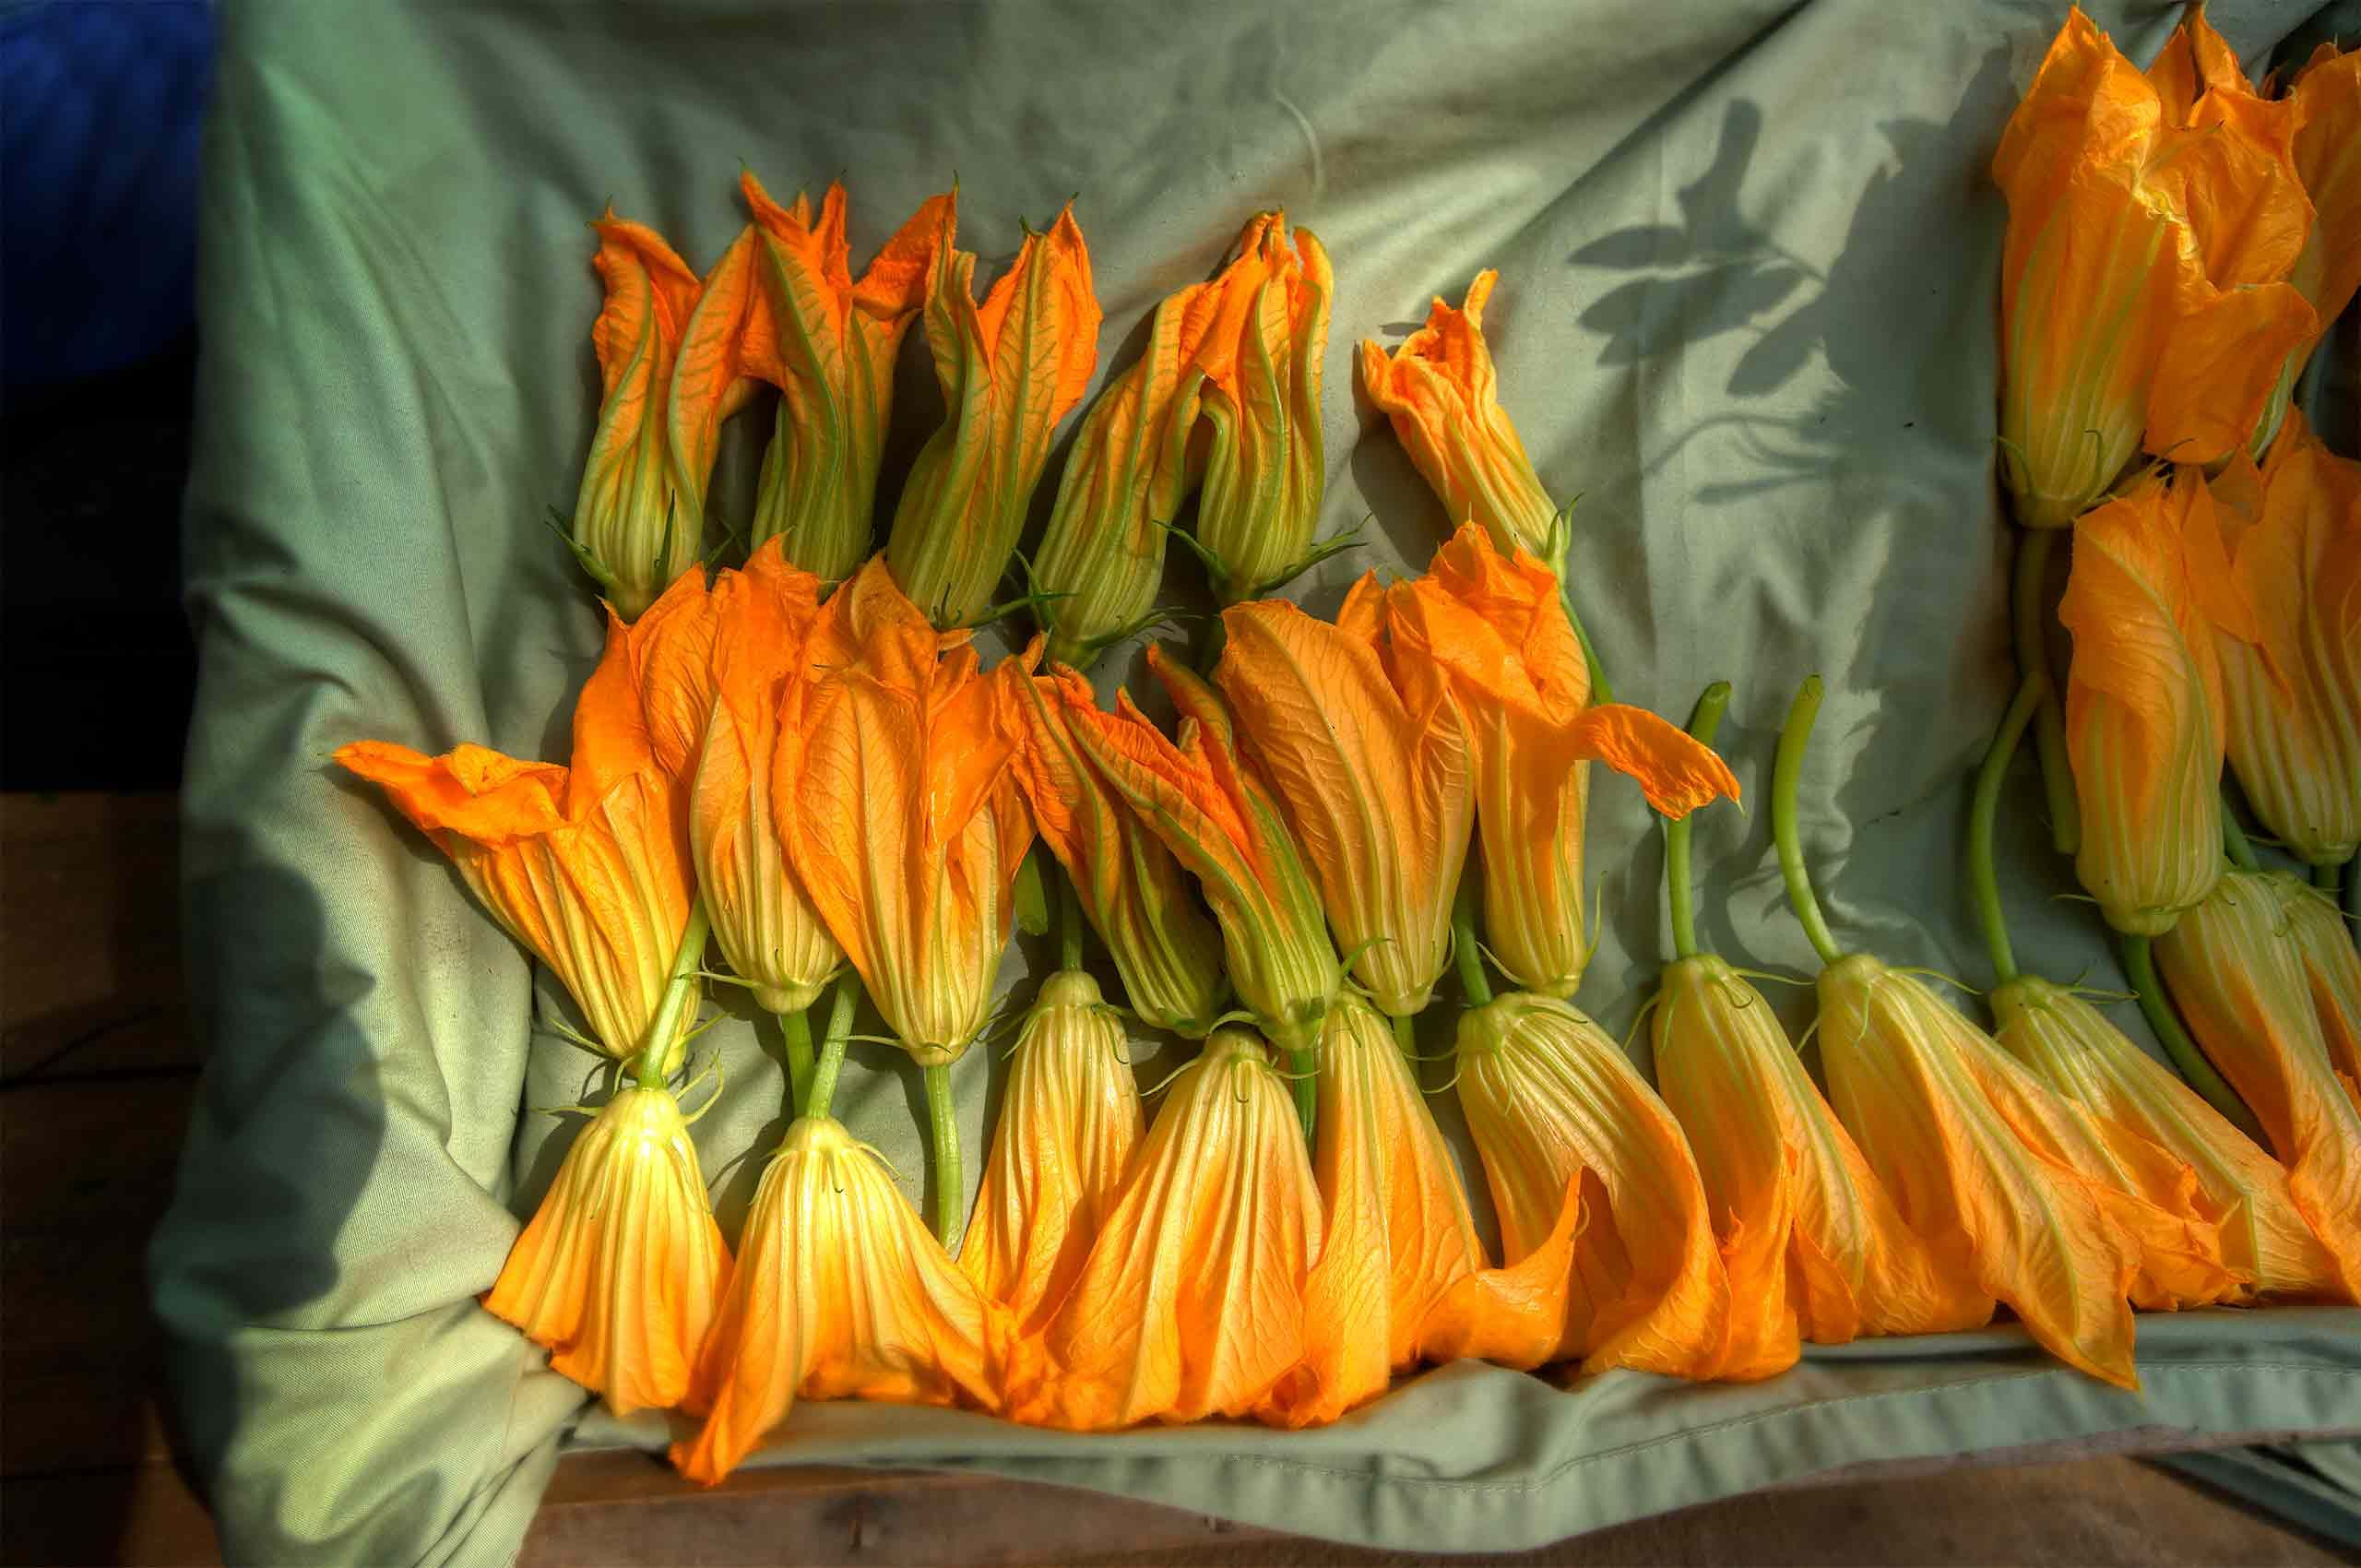 Squash blossoms Blue berries farmers  market Portland Maine